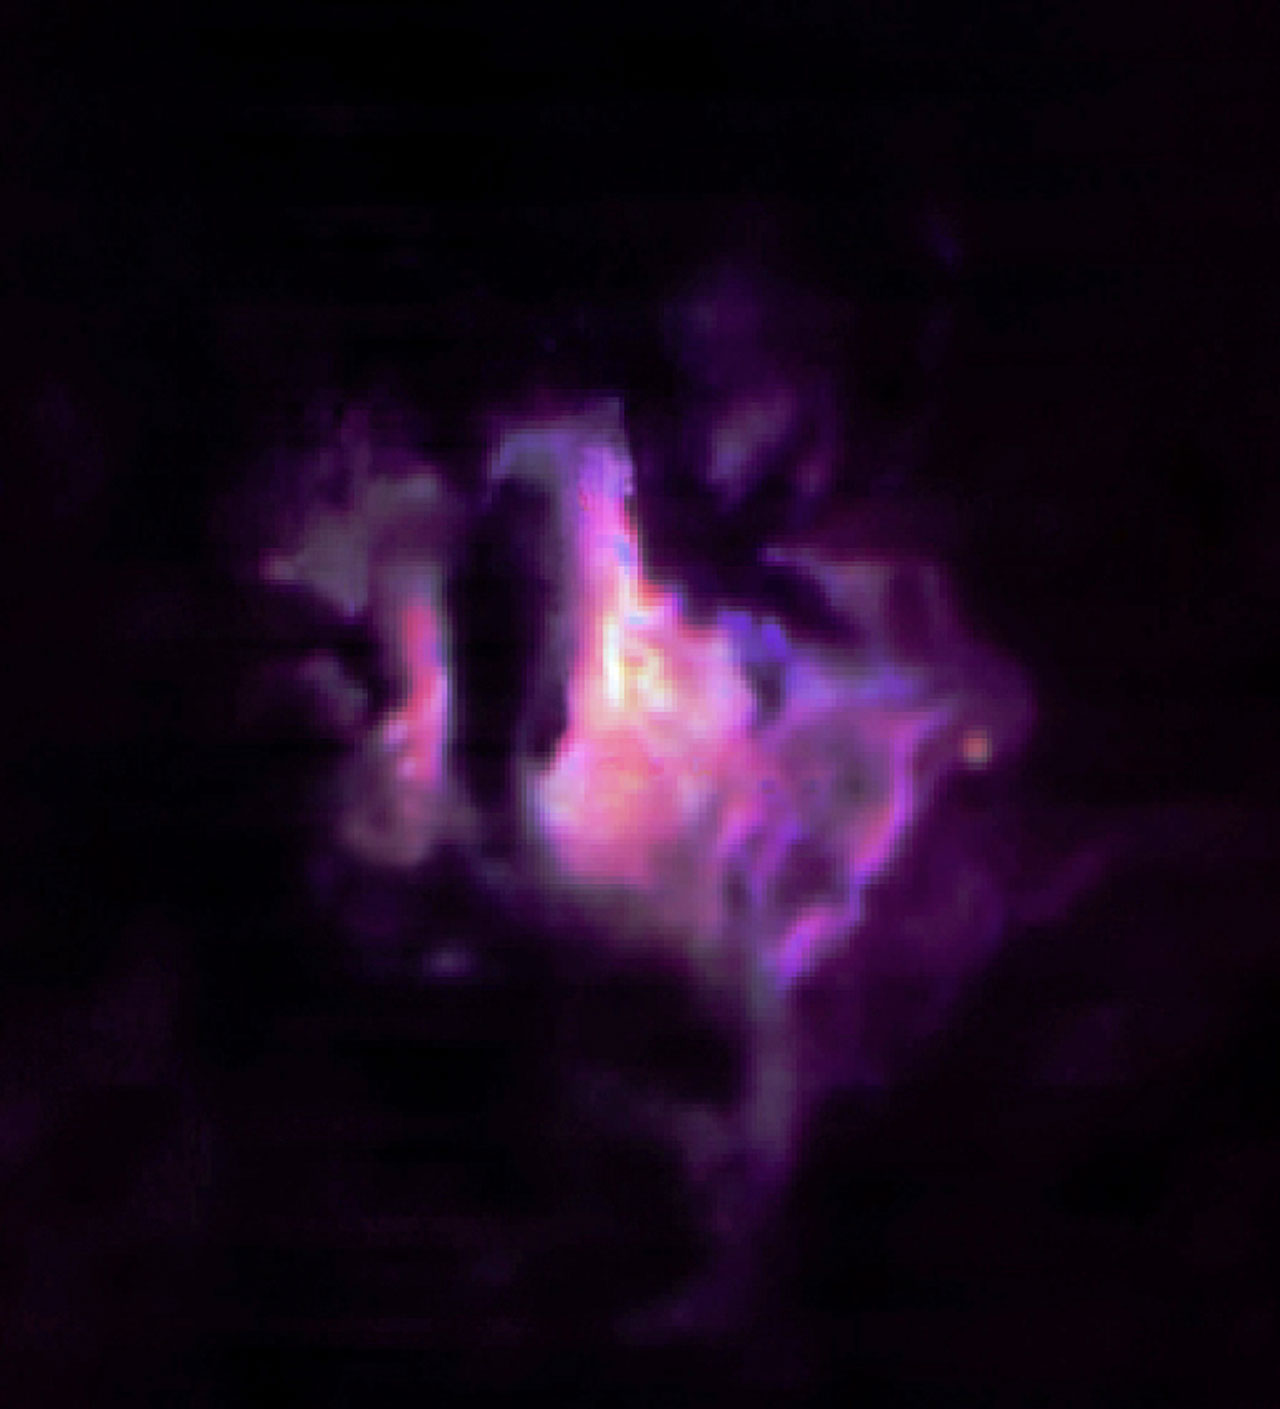 Colour Composite of the Star Forming Region G333.6-0.2